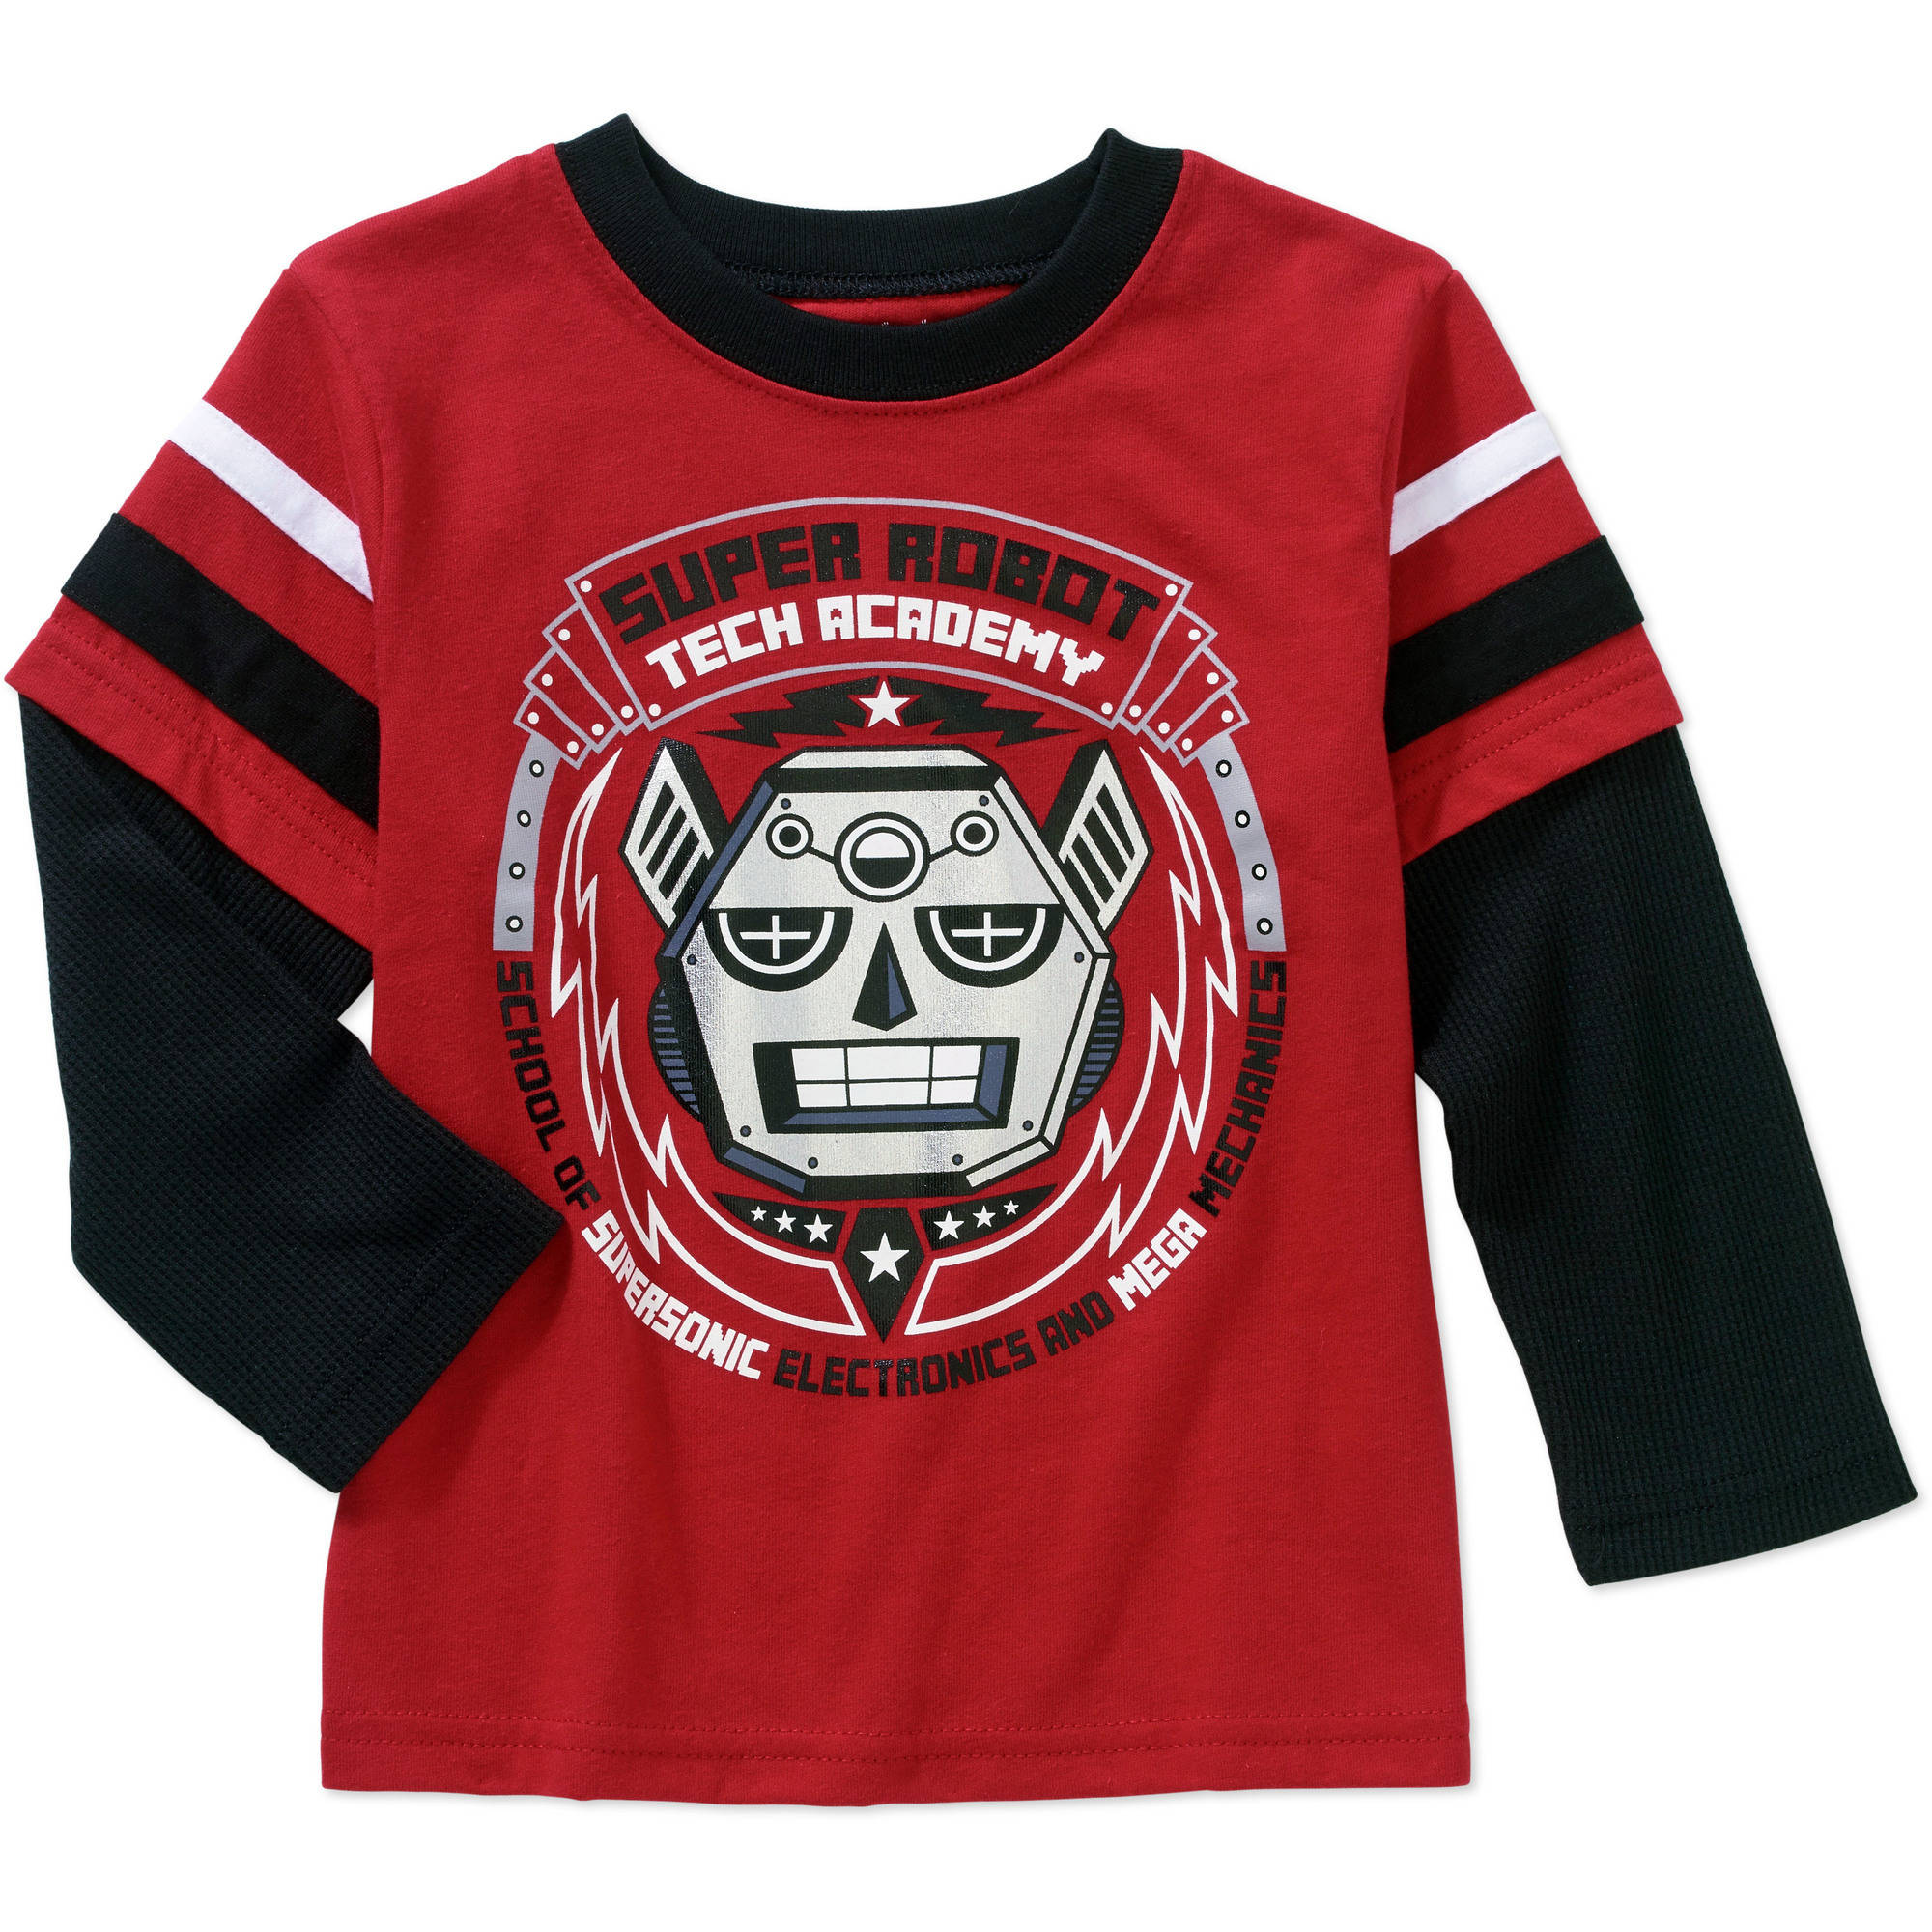 Garanimals Baby Toddler Boys' Long Sleeve Graphic Hangdown Tee Shirt